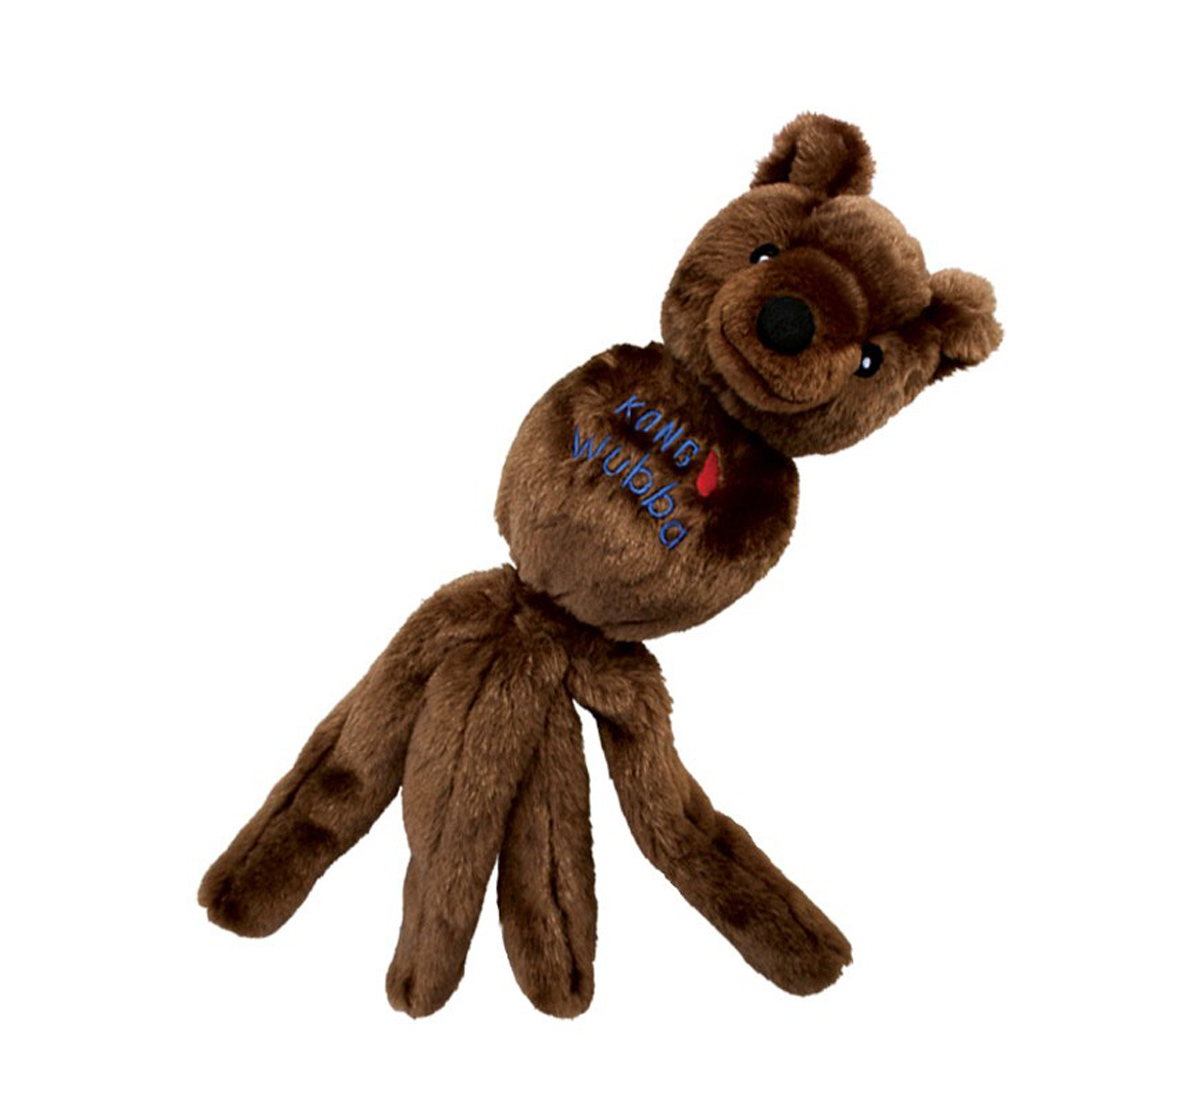 KONG Wubba Friend Dog Toy - XLarge